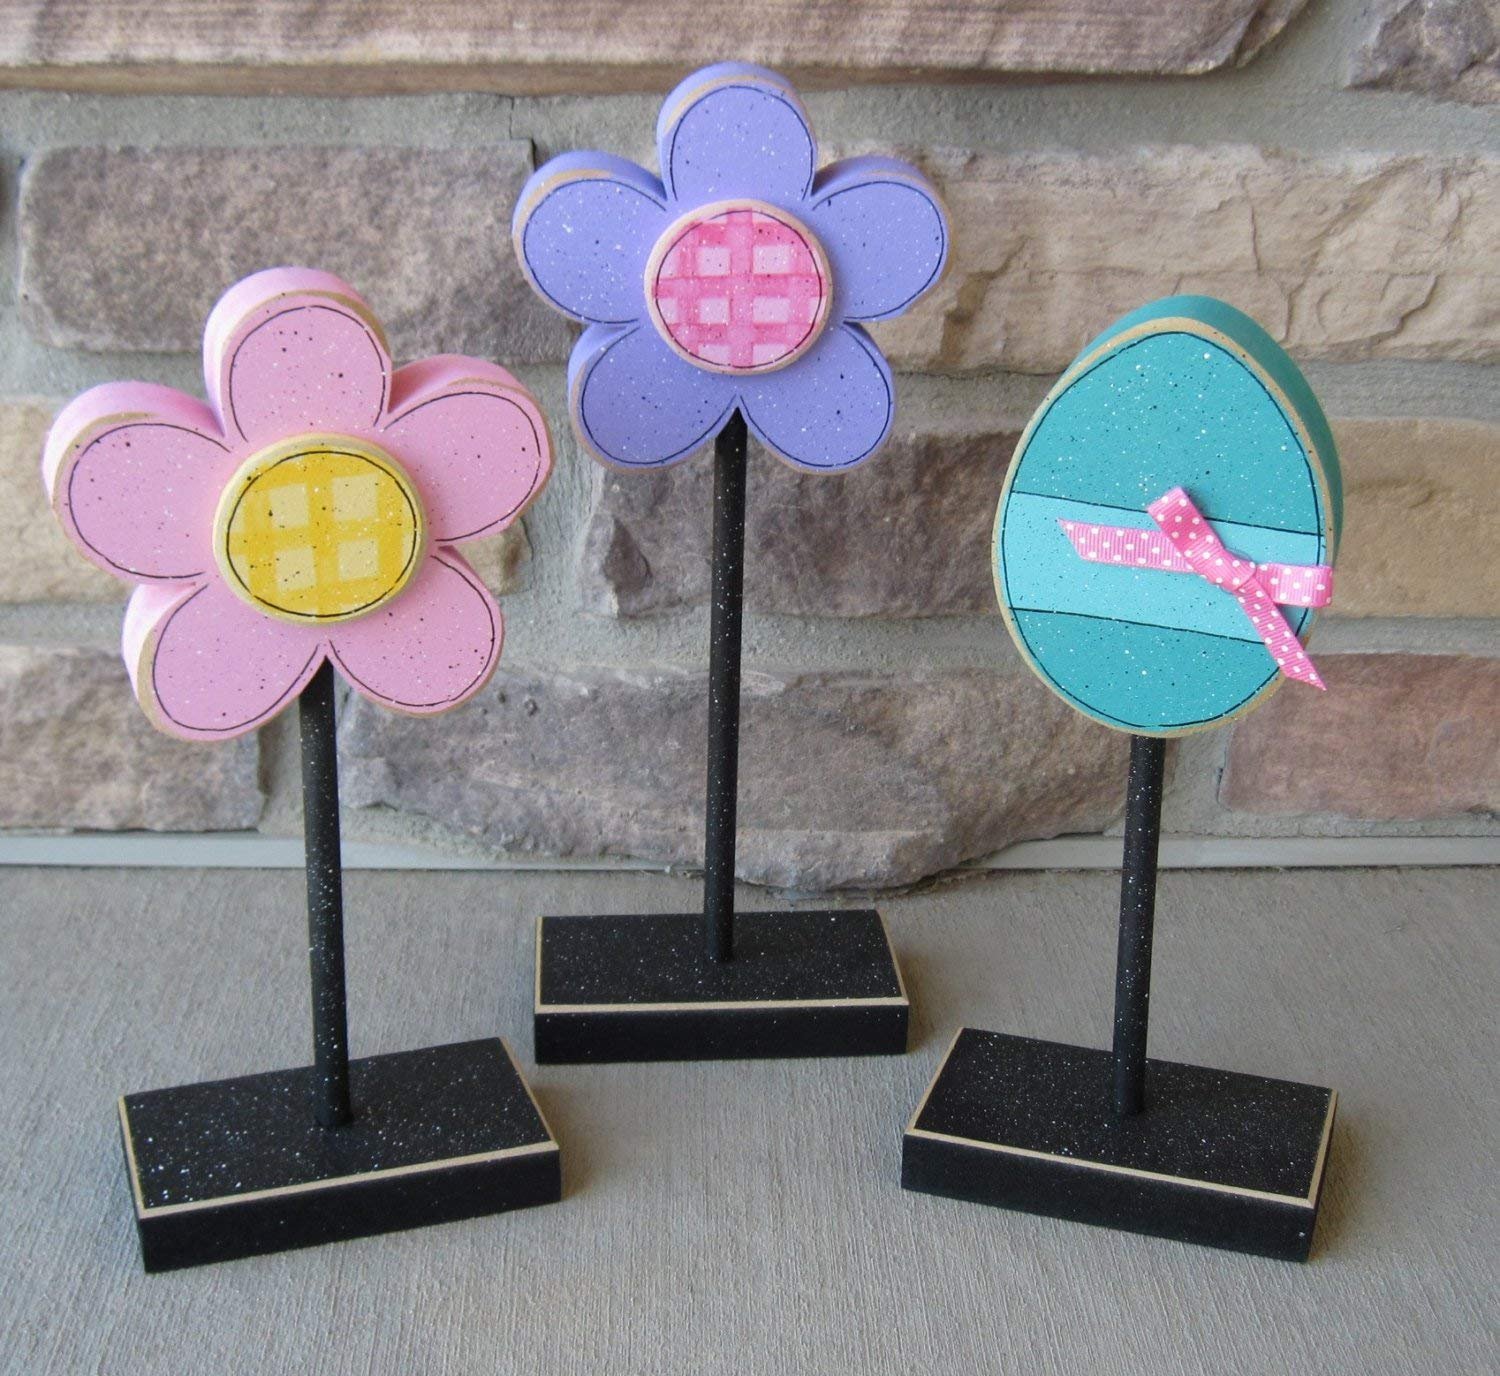 3 Tall Standing Spring and EASTER Themed Block SET for Easter decor, shelf, desk, office and home decor